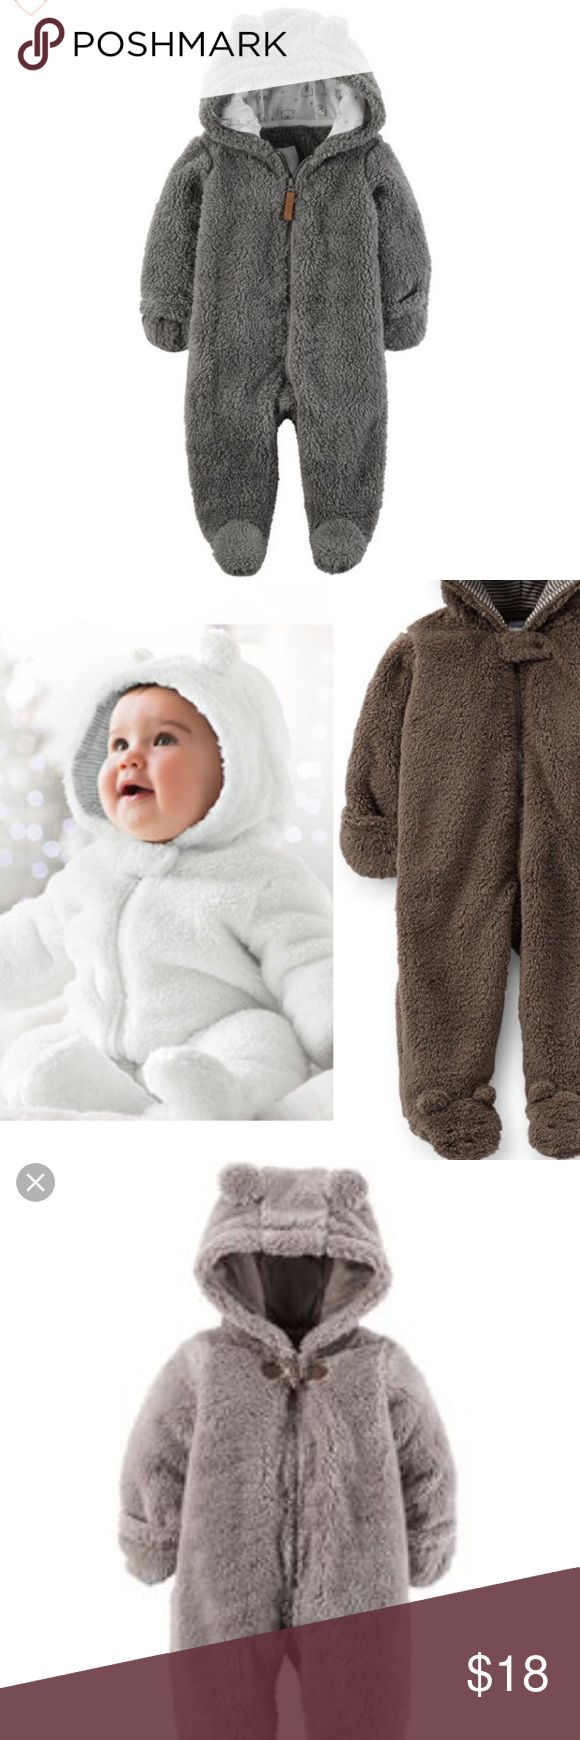 Sherpa baby bear suit 3 months Super cute. Only worn 1-2x. Gray/brown color. Unisex. 3 months. carters One Pieces